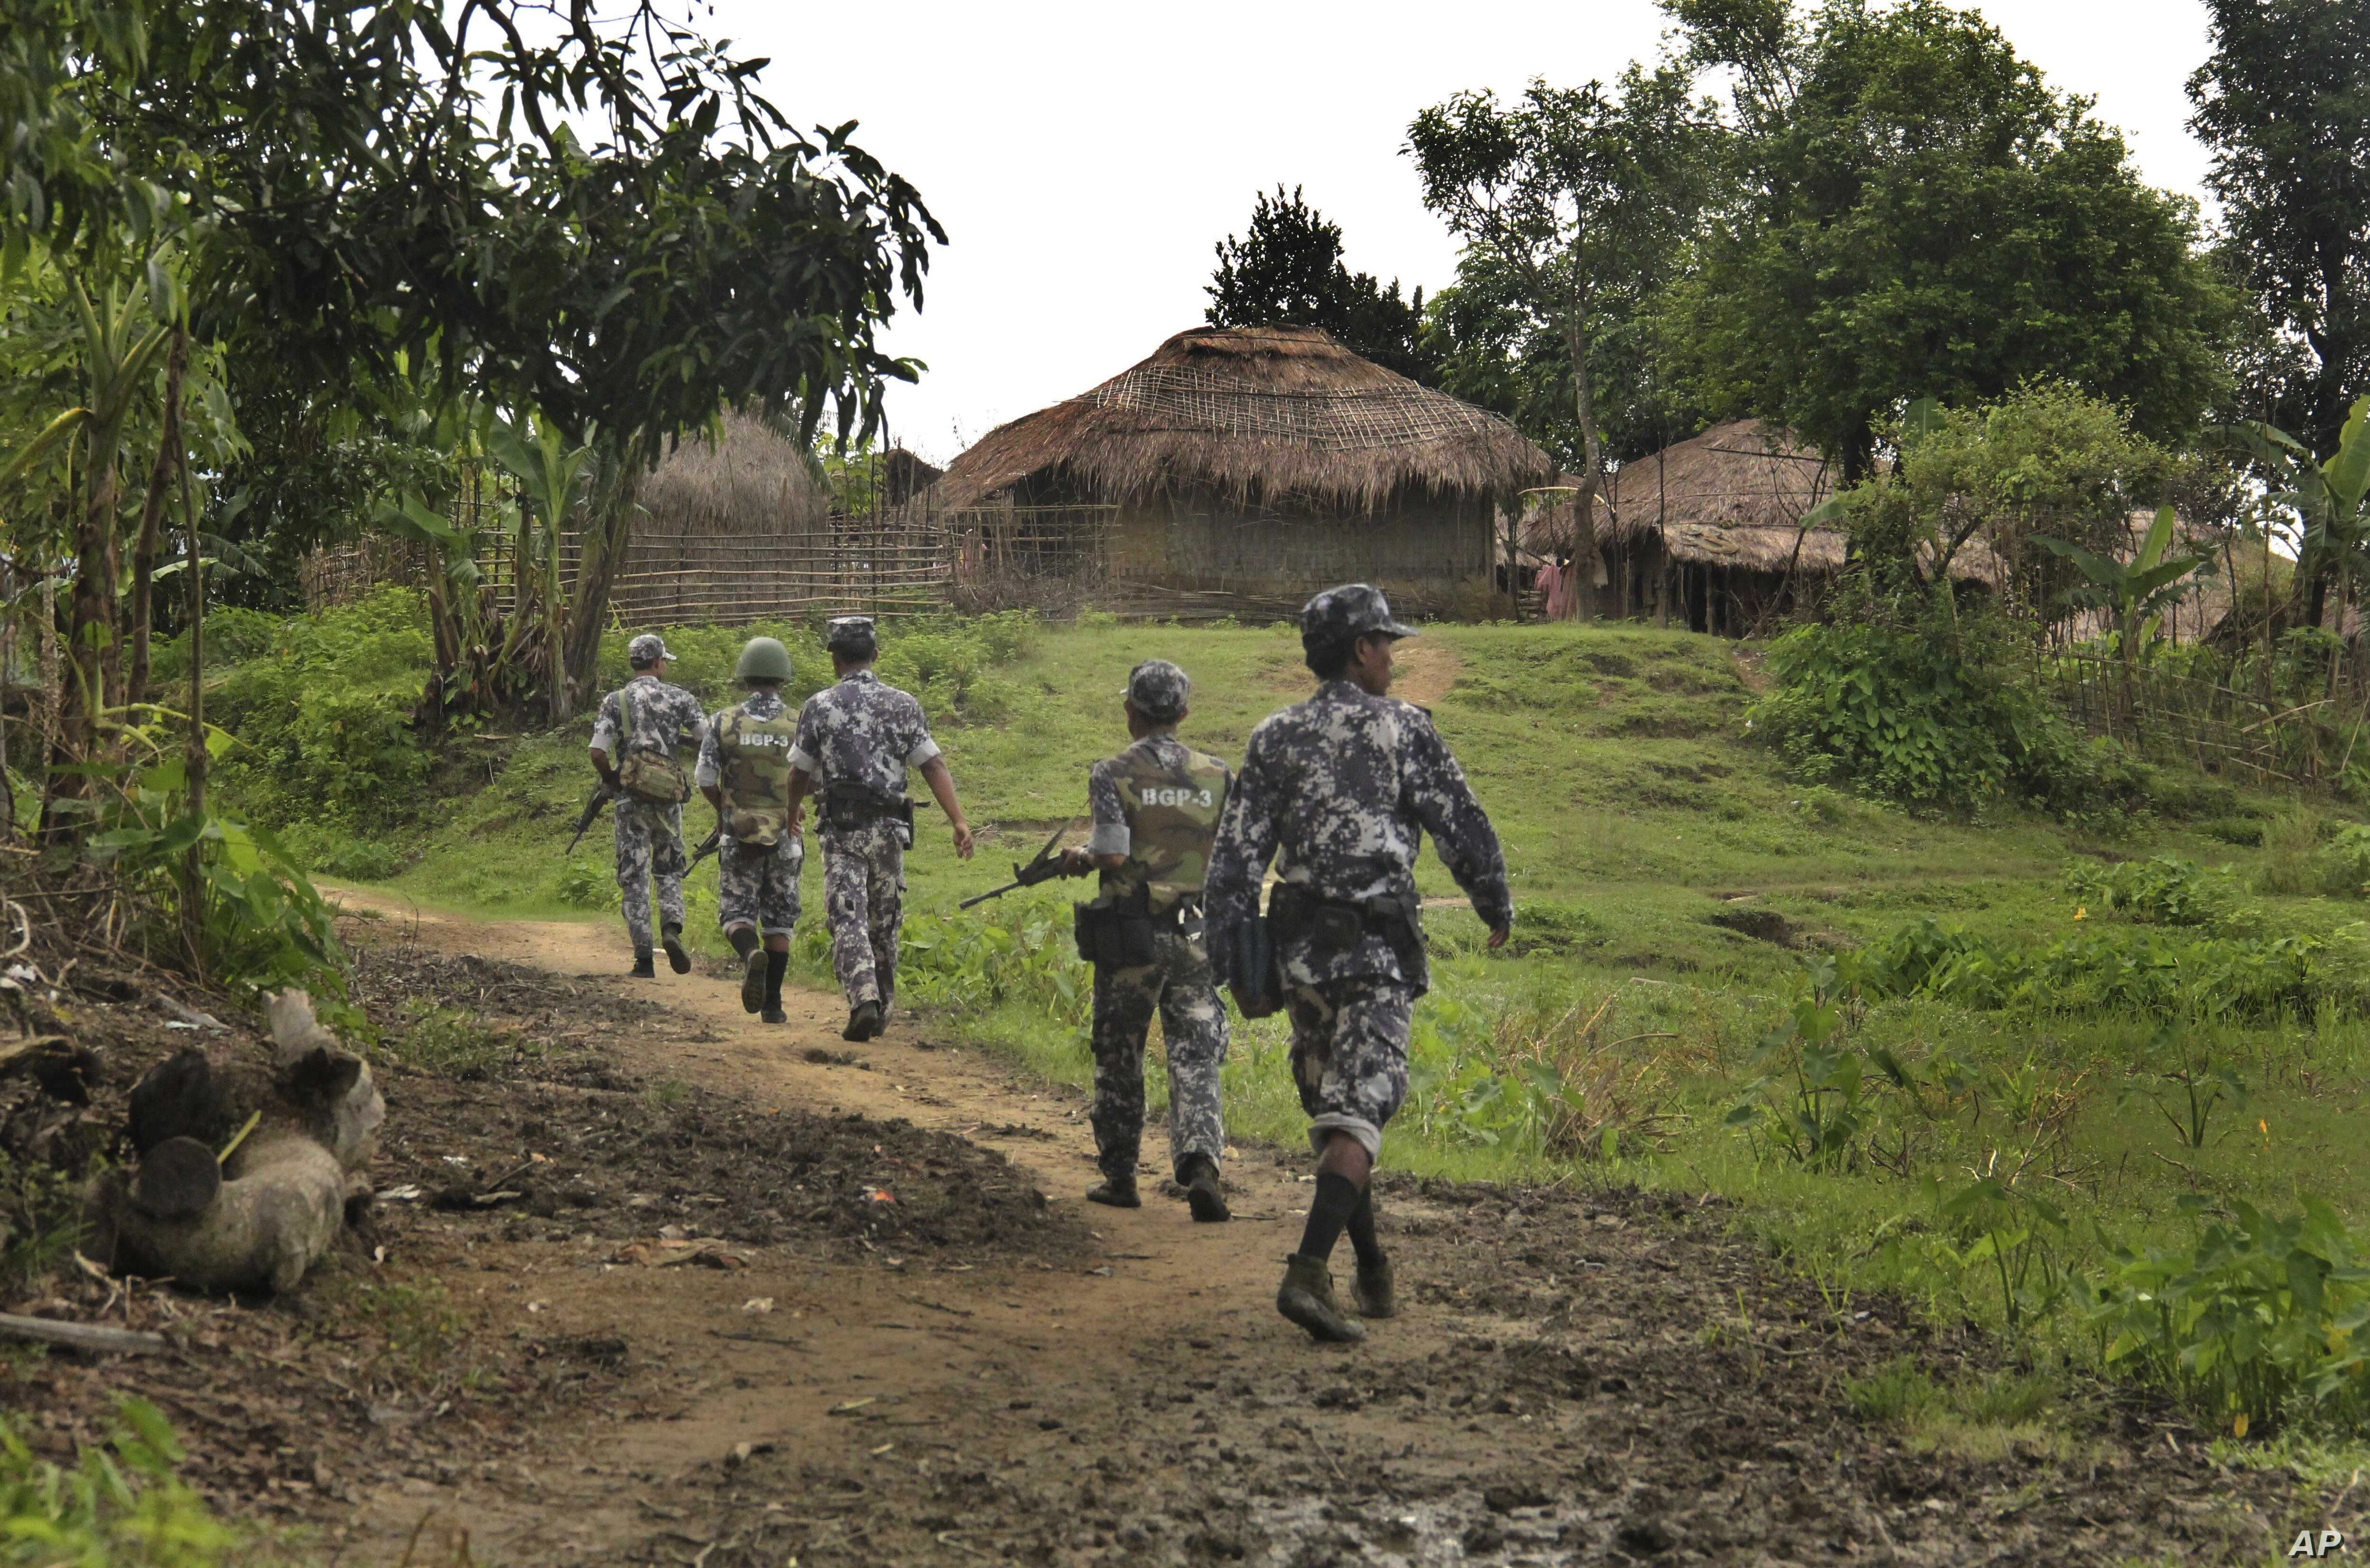 In this July 14, 2017 photo, Myanmar Border Guard Police (BGP) officers walk along a path in Tin May village, in which Myanmar government and military claim the existence of Muslim terrorists in Rakhine State, Myanmar.